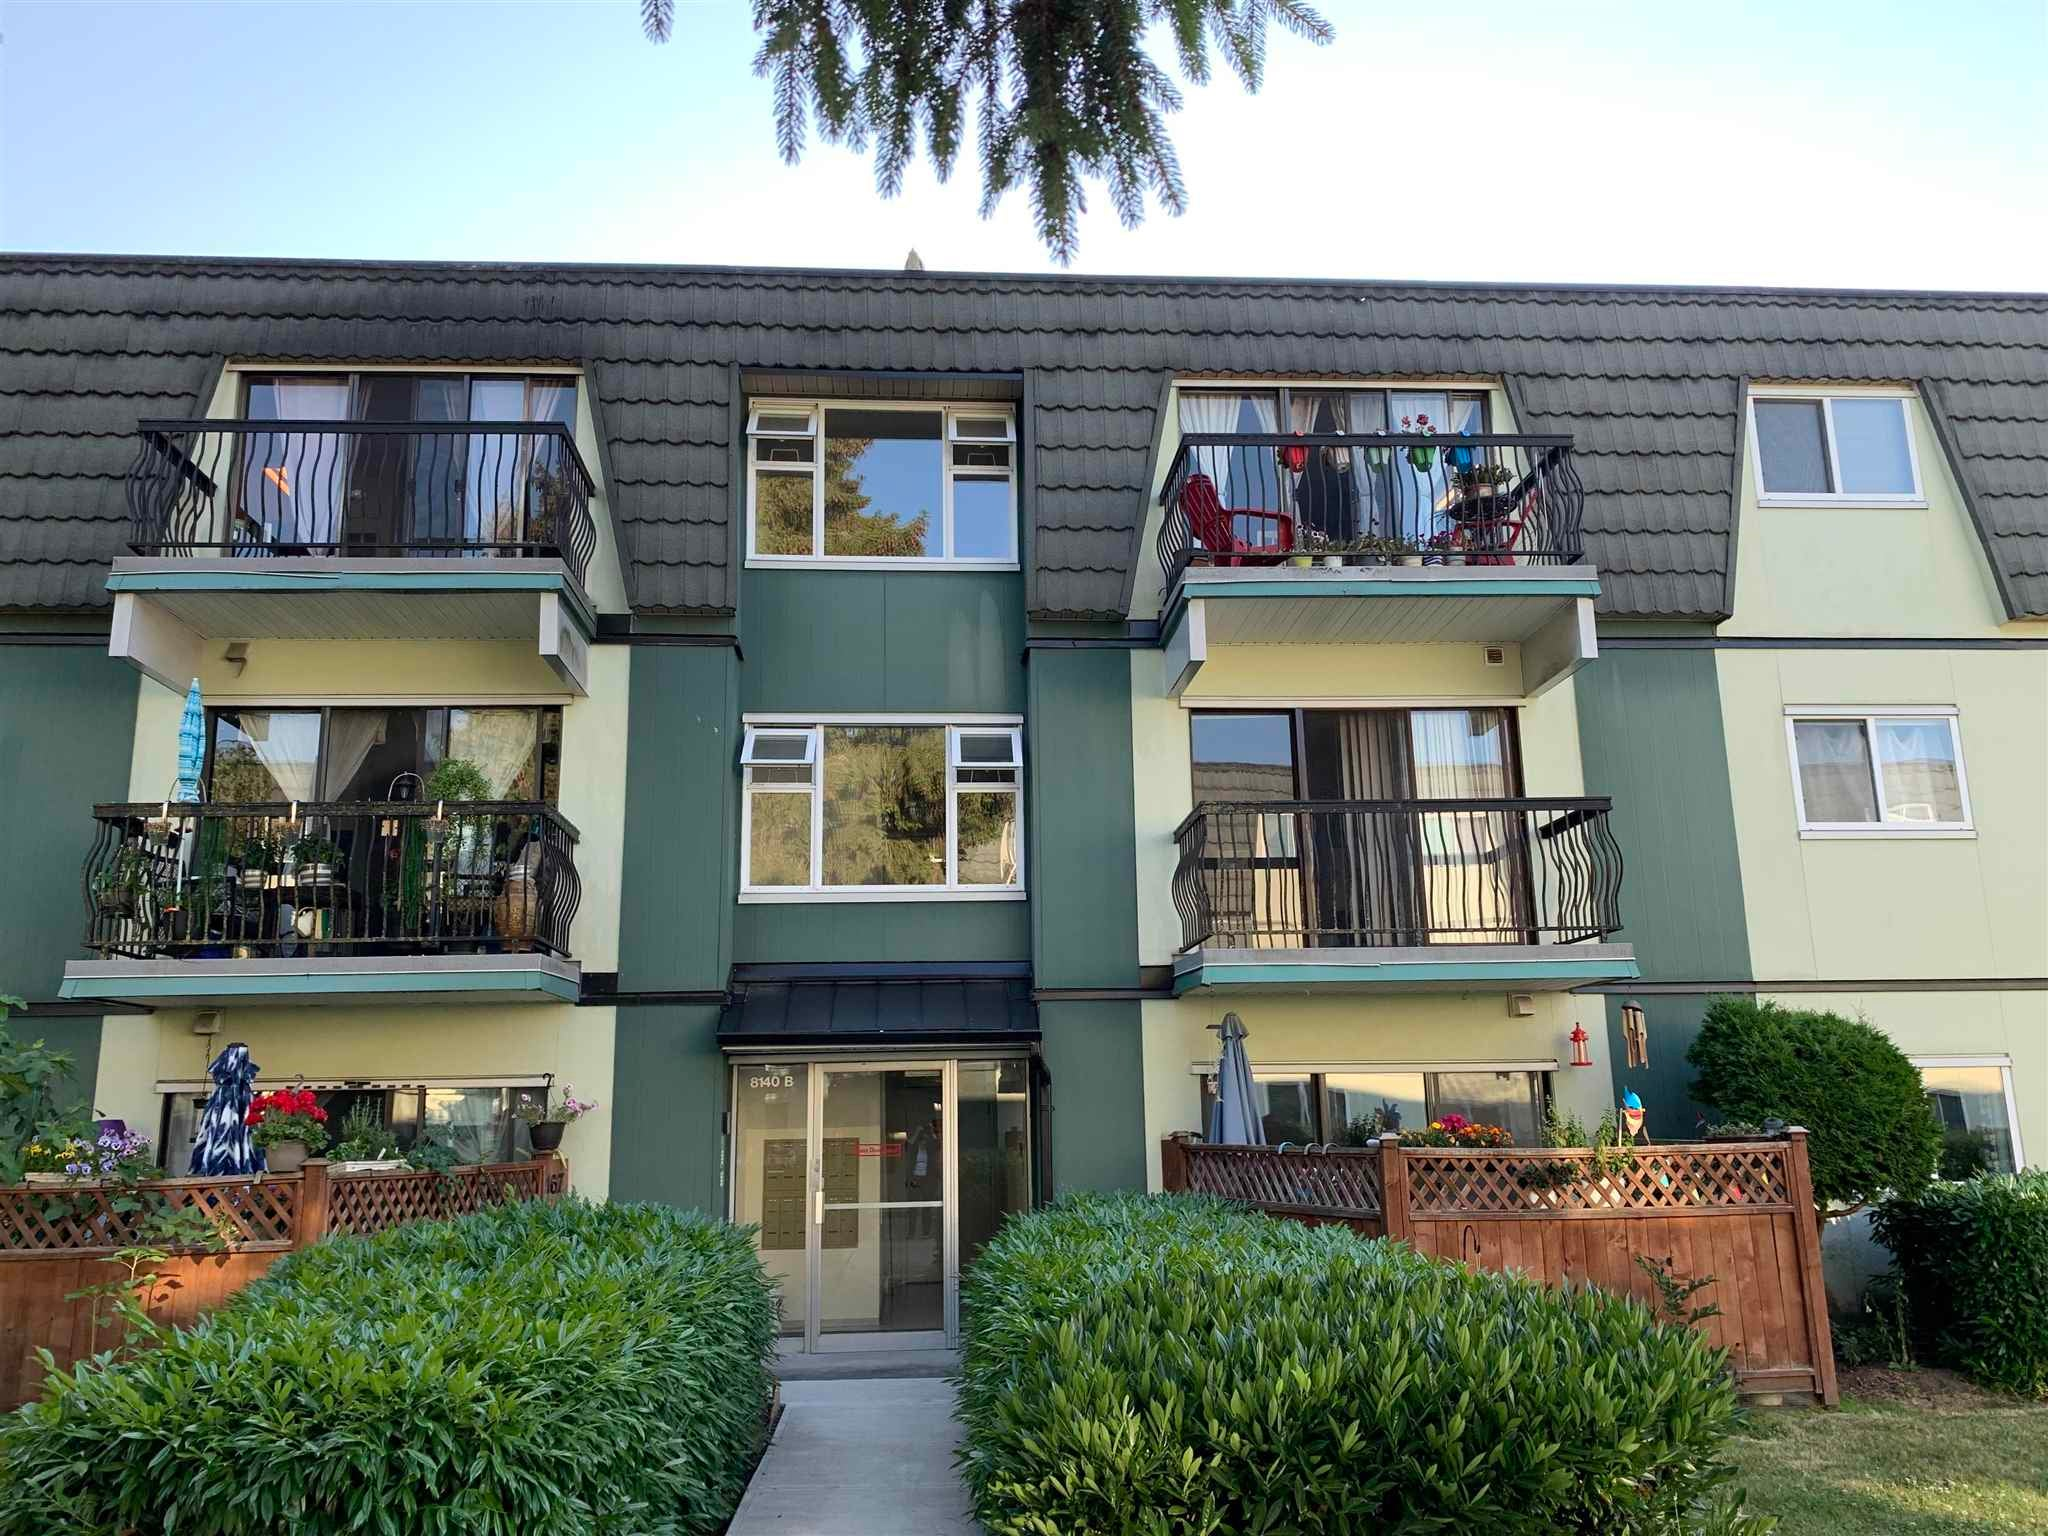 270 8140B WILLIAMS ROAD - South Arm Apartment/Condo for sale, 3 Bedrooms (R2600313)